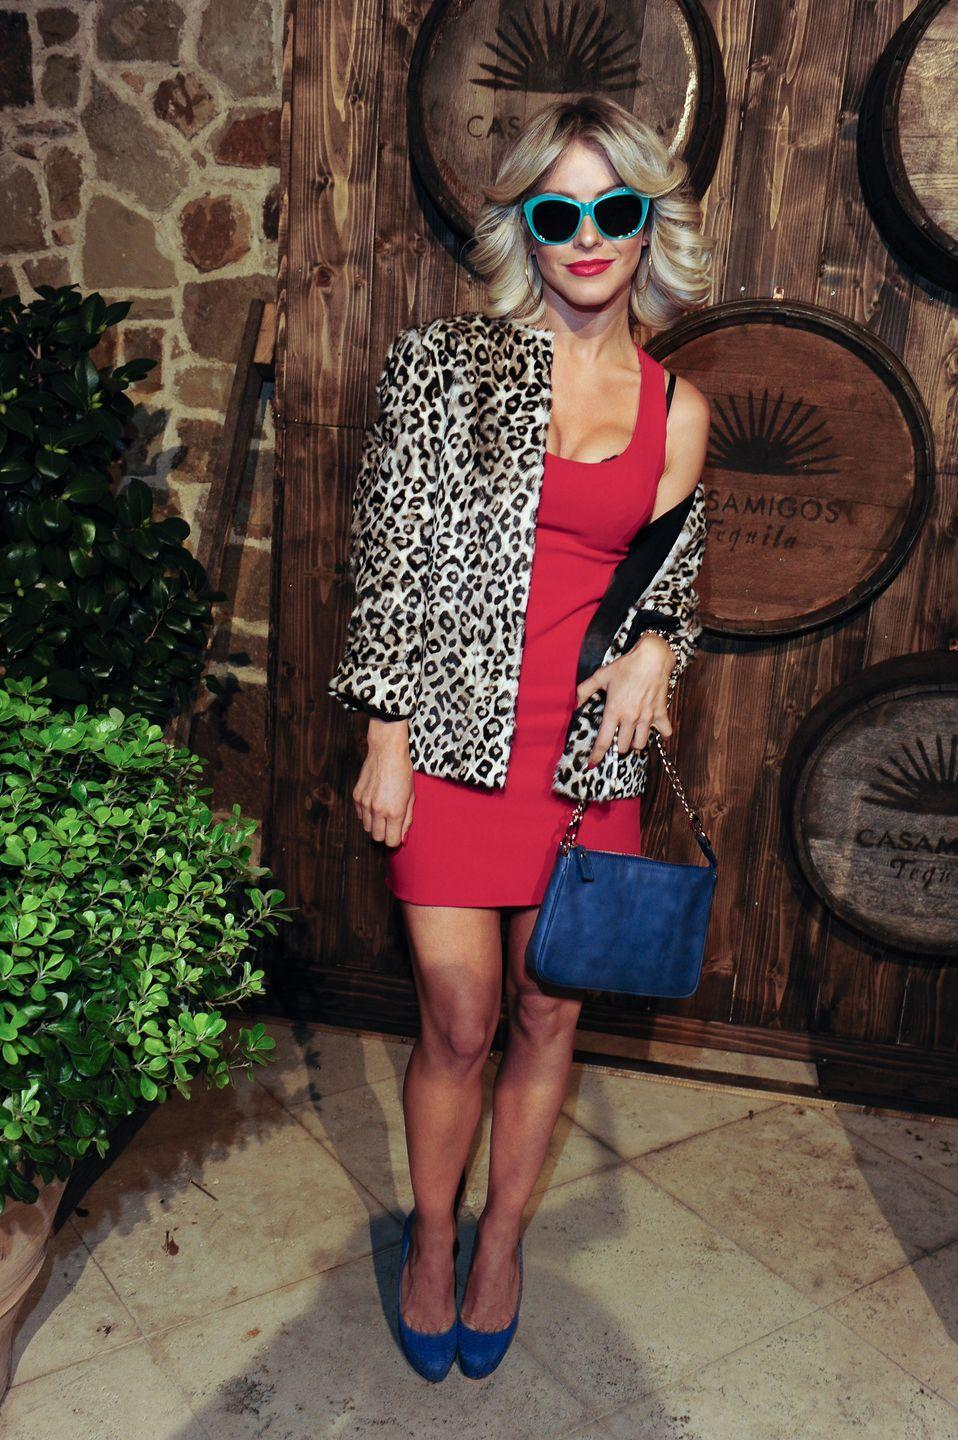 """<p>To channel Alabama Whitman from <em>True Romance</em>, you just need a red dress, leopard-print jacket, and some shades. </p><p><strong>What You'll Need:</strong> <a href=""""https://www.amazon.com/Womens-Sleeveless-Stretchy-Casual-Bodycon/dp/B08SJVWDNV?tag=syn-yahoo-20&ascsubtag=%5Bartid%7C10070.g.28166042%5Bsrc%7Cyahoo-us"""" rel=""""nofollow noopener"""" target=""""_blank"""" data-ylk=""""slk:red dress"""" class=""""link rapid-noclick-resp"""">red dress</a>, <a href=""""https://www.amazon.com/Sleeve-Overcoat-Fluffy-Jacket-Leopard/dp/B01M5LIWPO?tag=syn-yahoo-20&ascsubtag=%5Bartid%7C10070.g.28166042%5Bsrc%7Cyahoo-us"""" rel=""""nofollow noopener"""" target=""""_blank"""" data-ylk=""""slk:leopard jacket"""" class=""""link rapid-noclick-resp"""">leopard jacket</a>, and <a href=""""https://www.amazon.com/Classic-Retro-Vintage-Sunglasses-Turquoise/dp/B00PSFVPNS?tag=syn-yahoo-20&ascsubtag=%5Bartid%7C10070.g.28166042%5Bsrc%7Cyahoo-us"""" rel=""""nofollow noopener"""" target=""""_blank"""" data-ylk=""""slk:blue sunglasses"""" class=""""link rapid-noclick-resp"""">blue sunglasses</a></p>"""